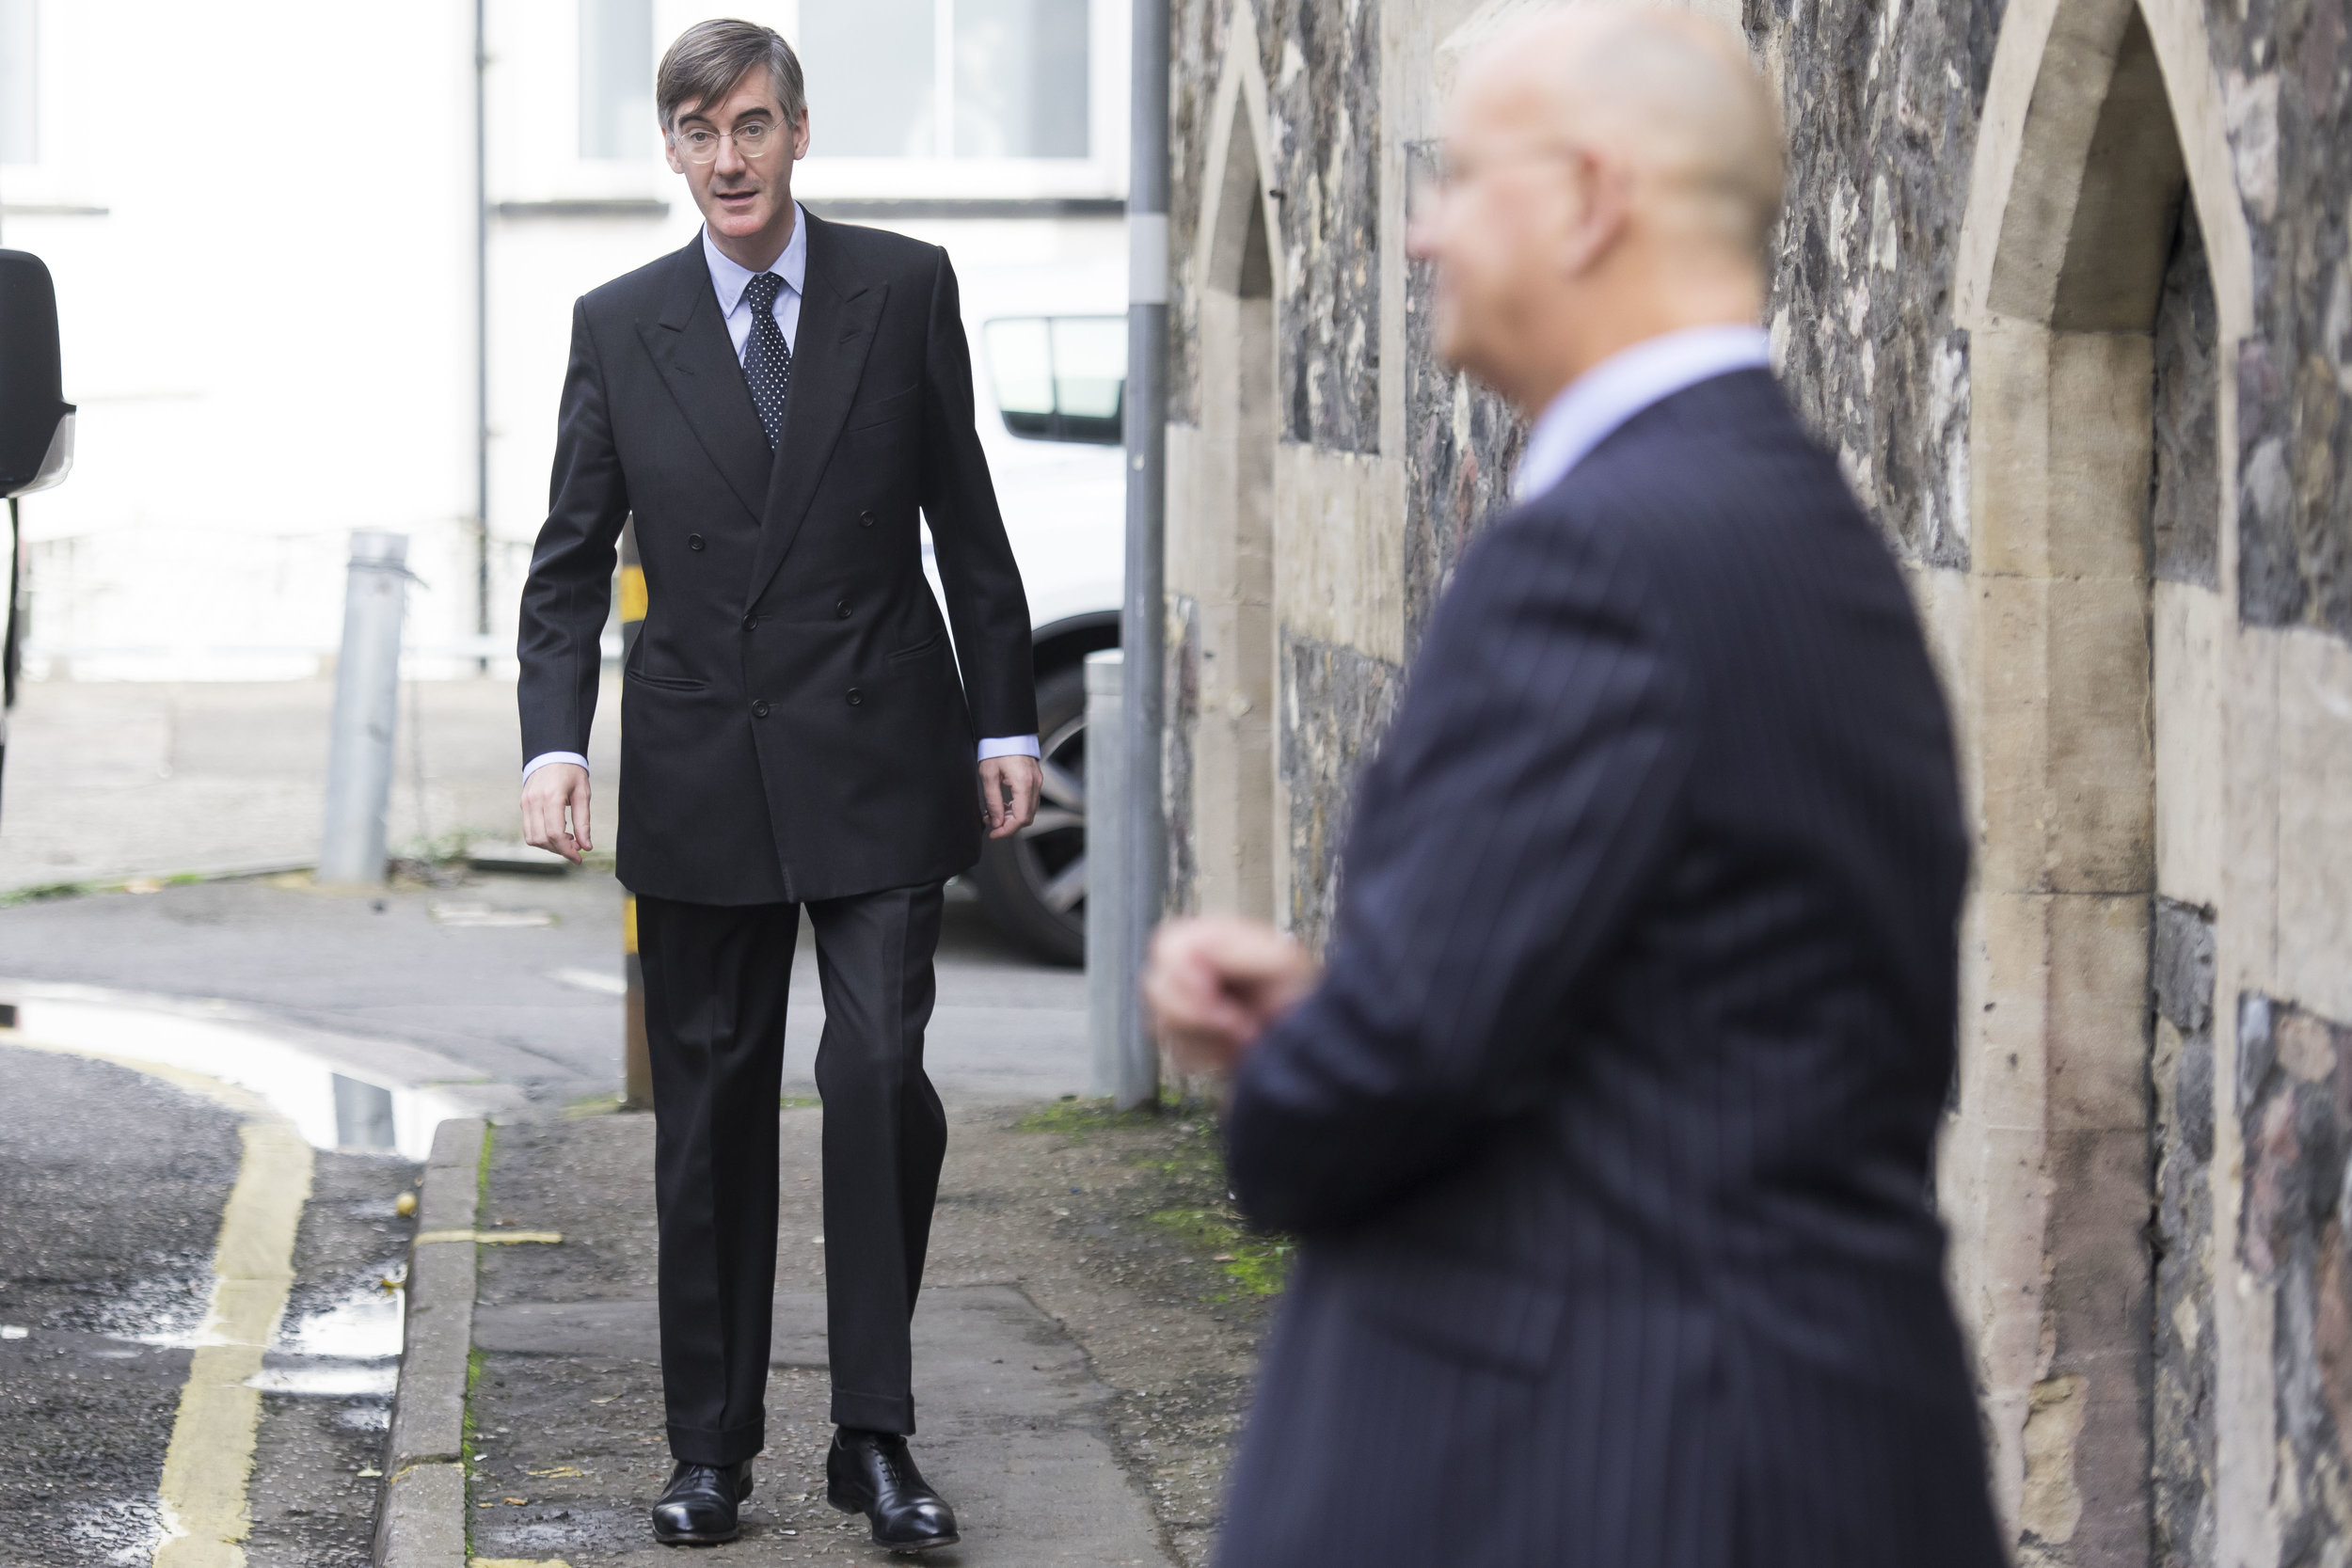 """CARDIFF, WALES - SEPTEMBER 29: Jacob Rees-Mogg, MP for North East Somerset, seen following a talk called Faith in the Future at the Cornerstone Church on September 29, 2017 in Cardiff, Wales. The talk, titled """"Faith in the Future"""", explores issues surrounding the importance of faith in the public and private life of our society. Jacob Rees-Mogg has recently caused controversy over his opposition to abortion after rape or incest. (Photo by Matthew Horwood/Getty Images)"""